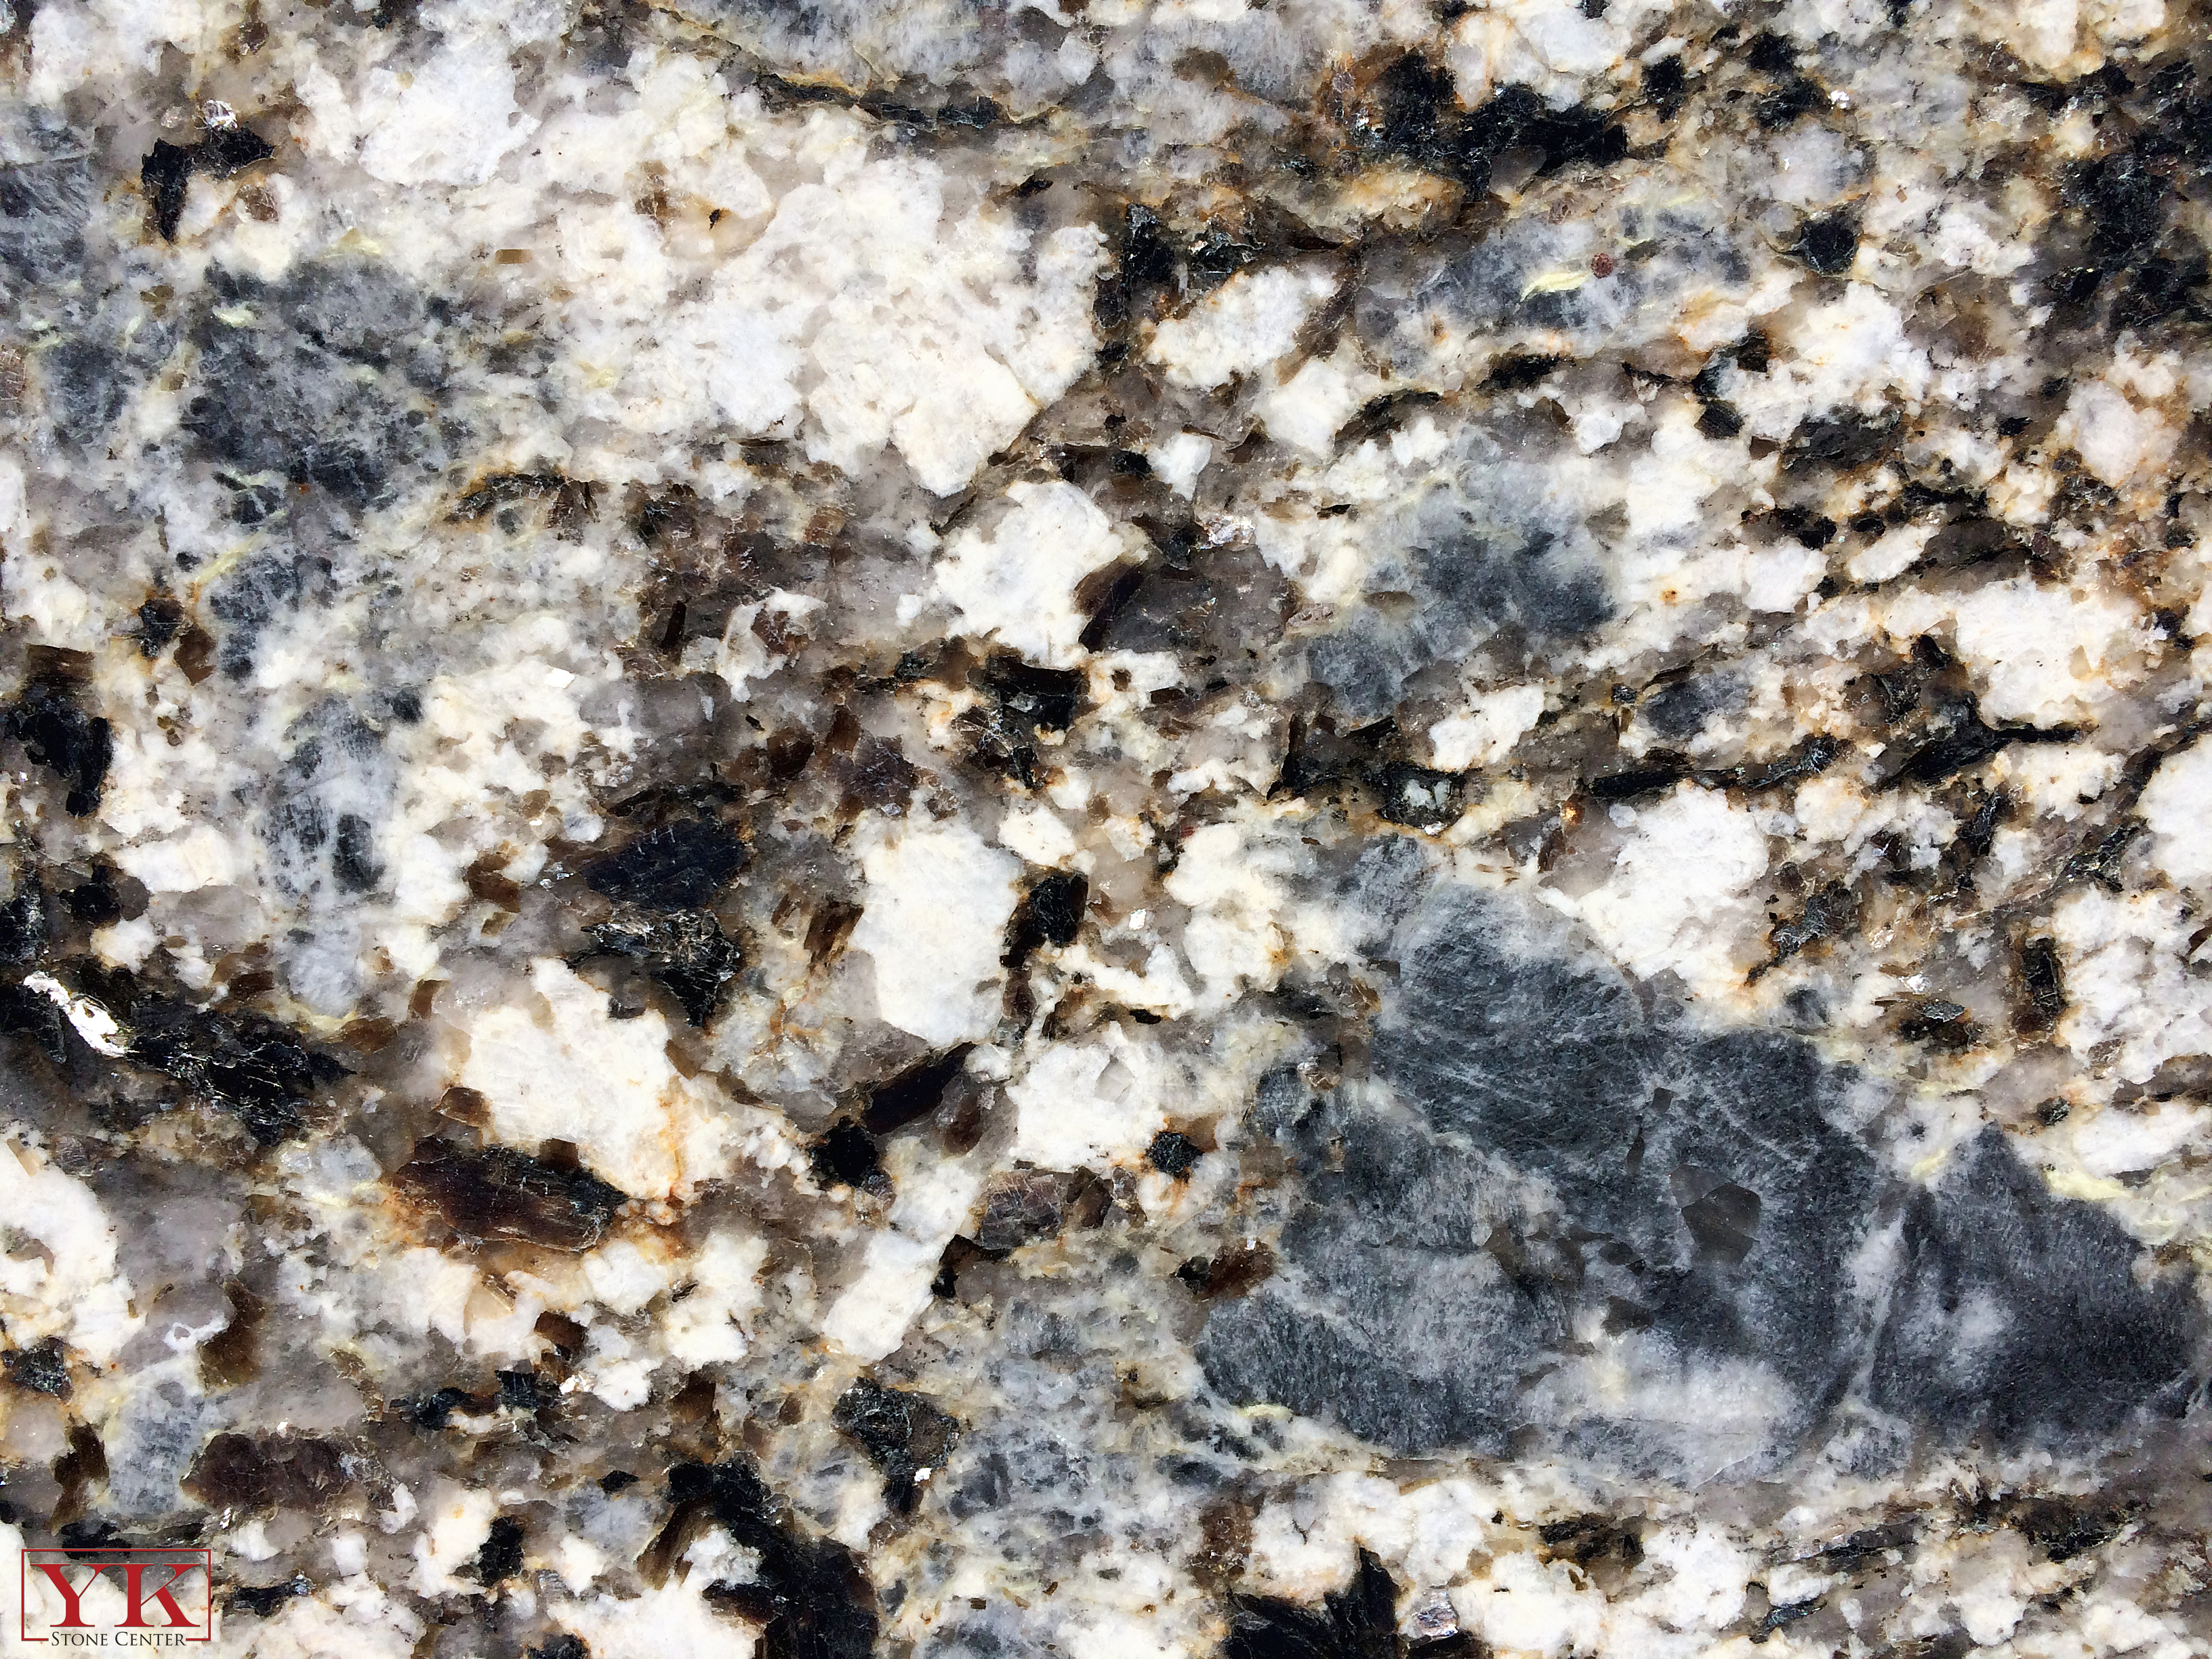 Blue Flower Granite Close up, Minerals in granite stone, YK Stone center in denver